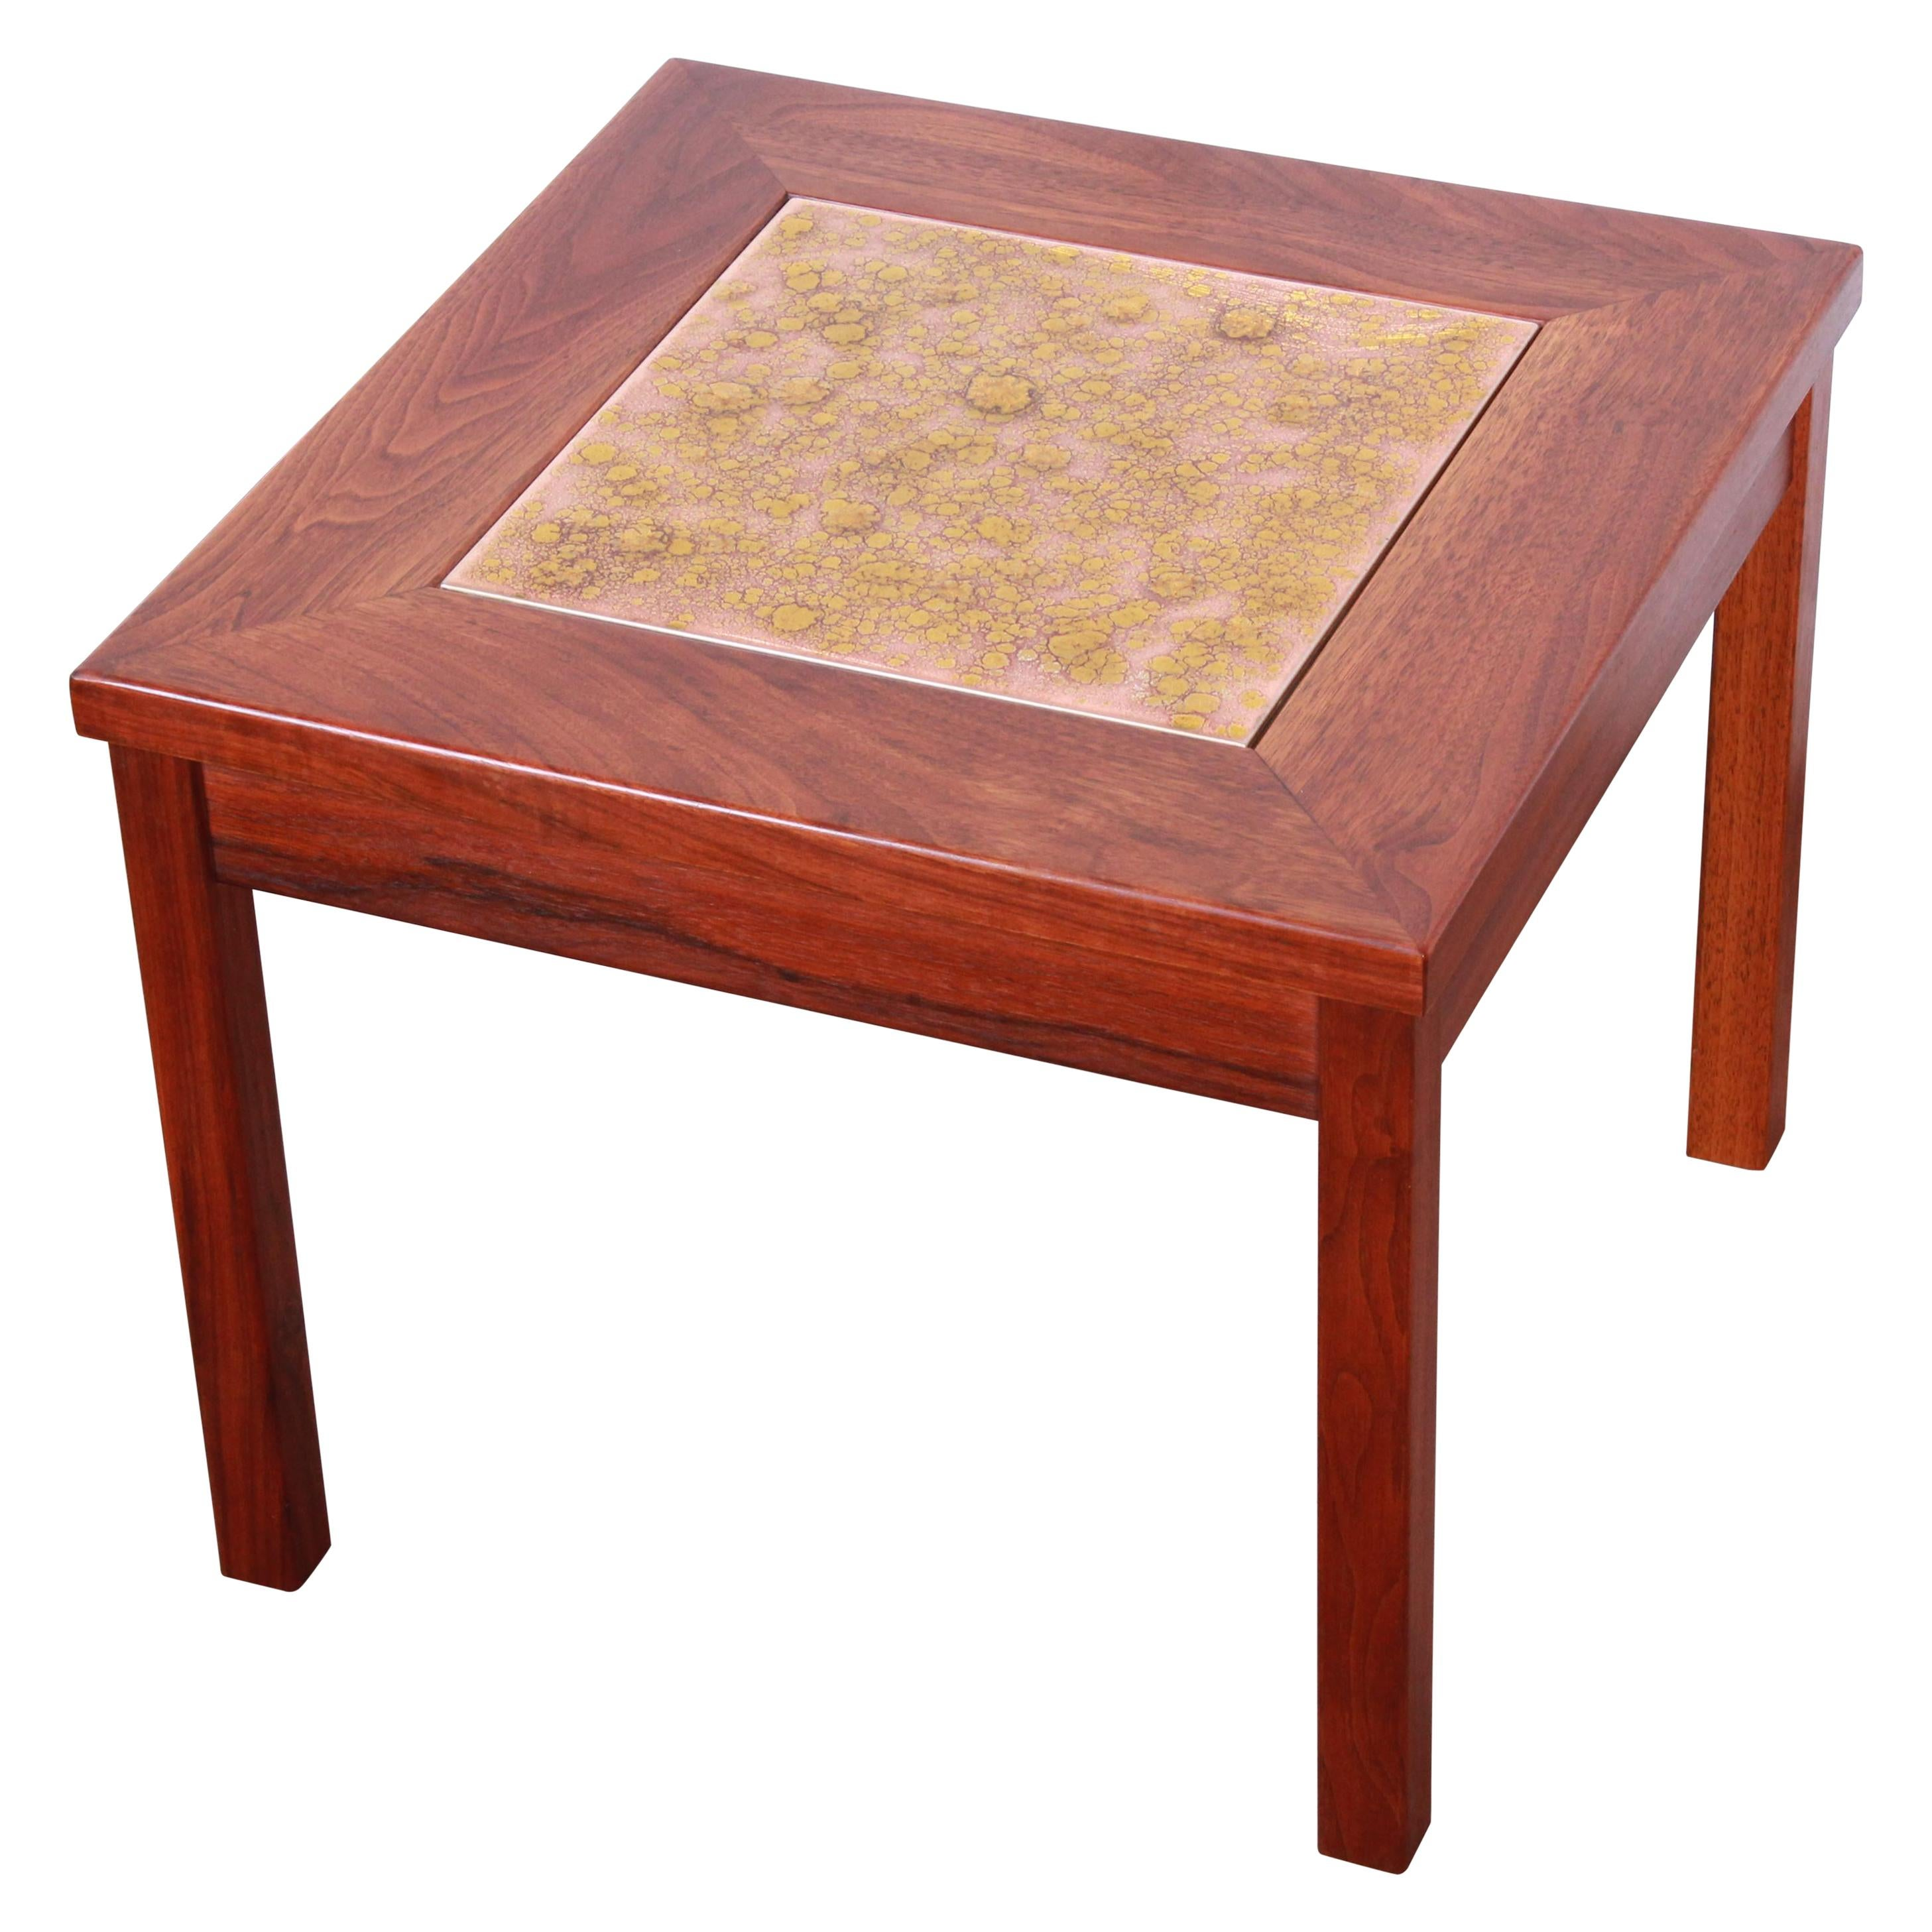 John Keal for Brown Saltman Walnut and Copper Tile Side Table, 1960s